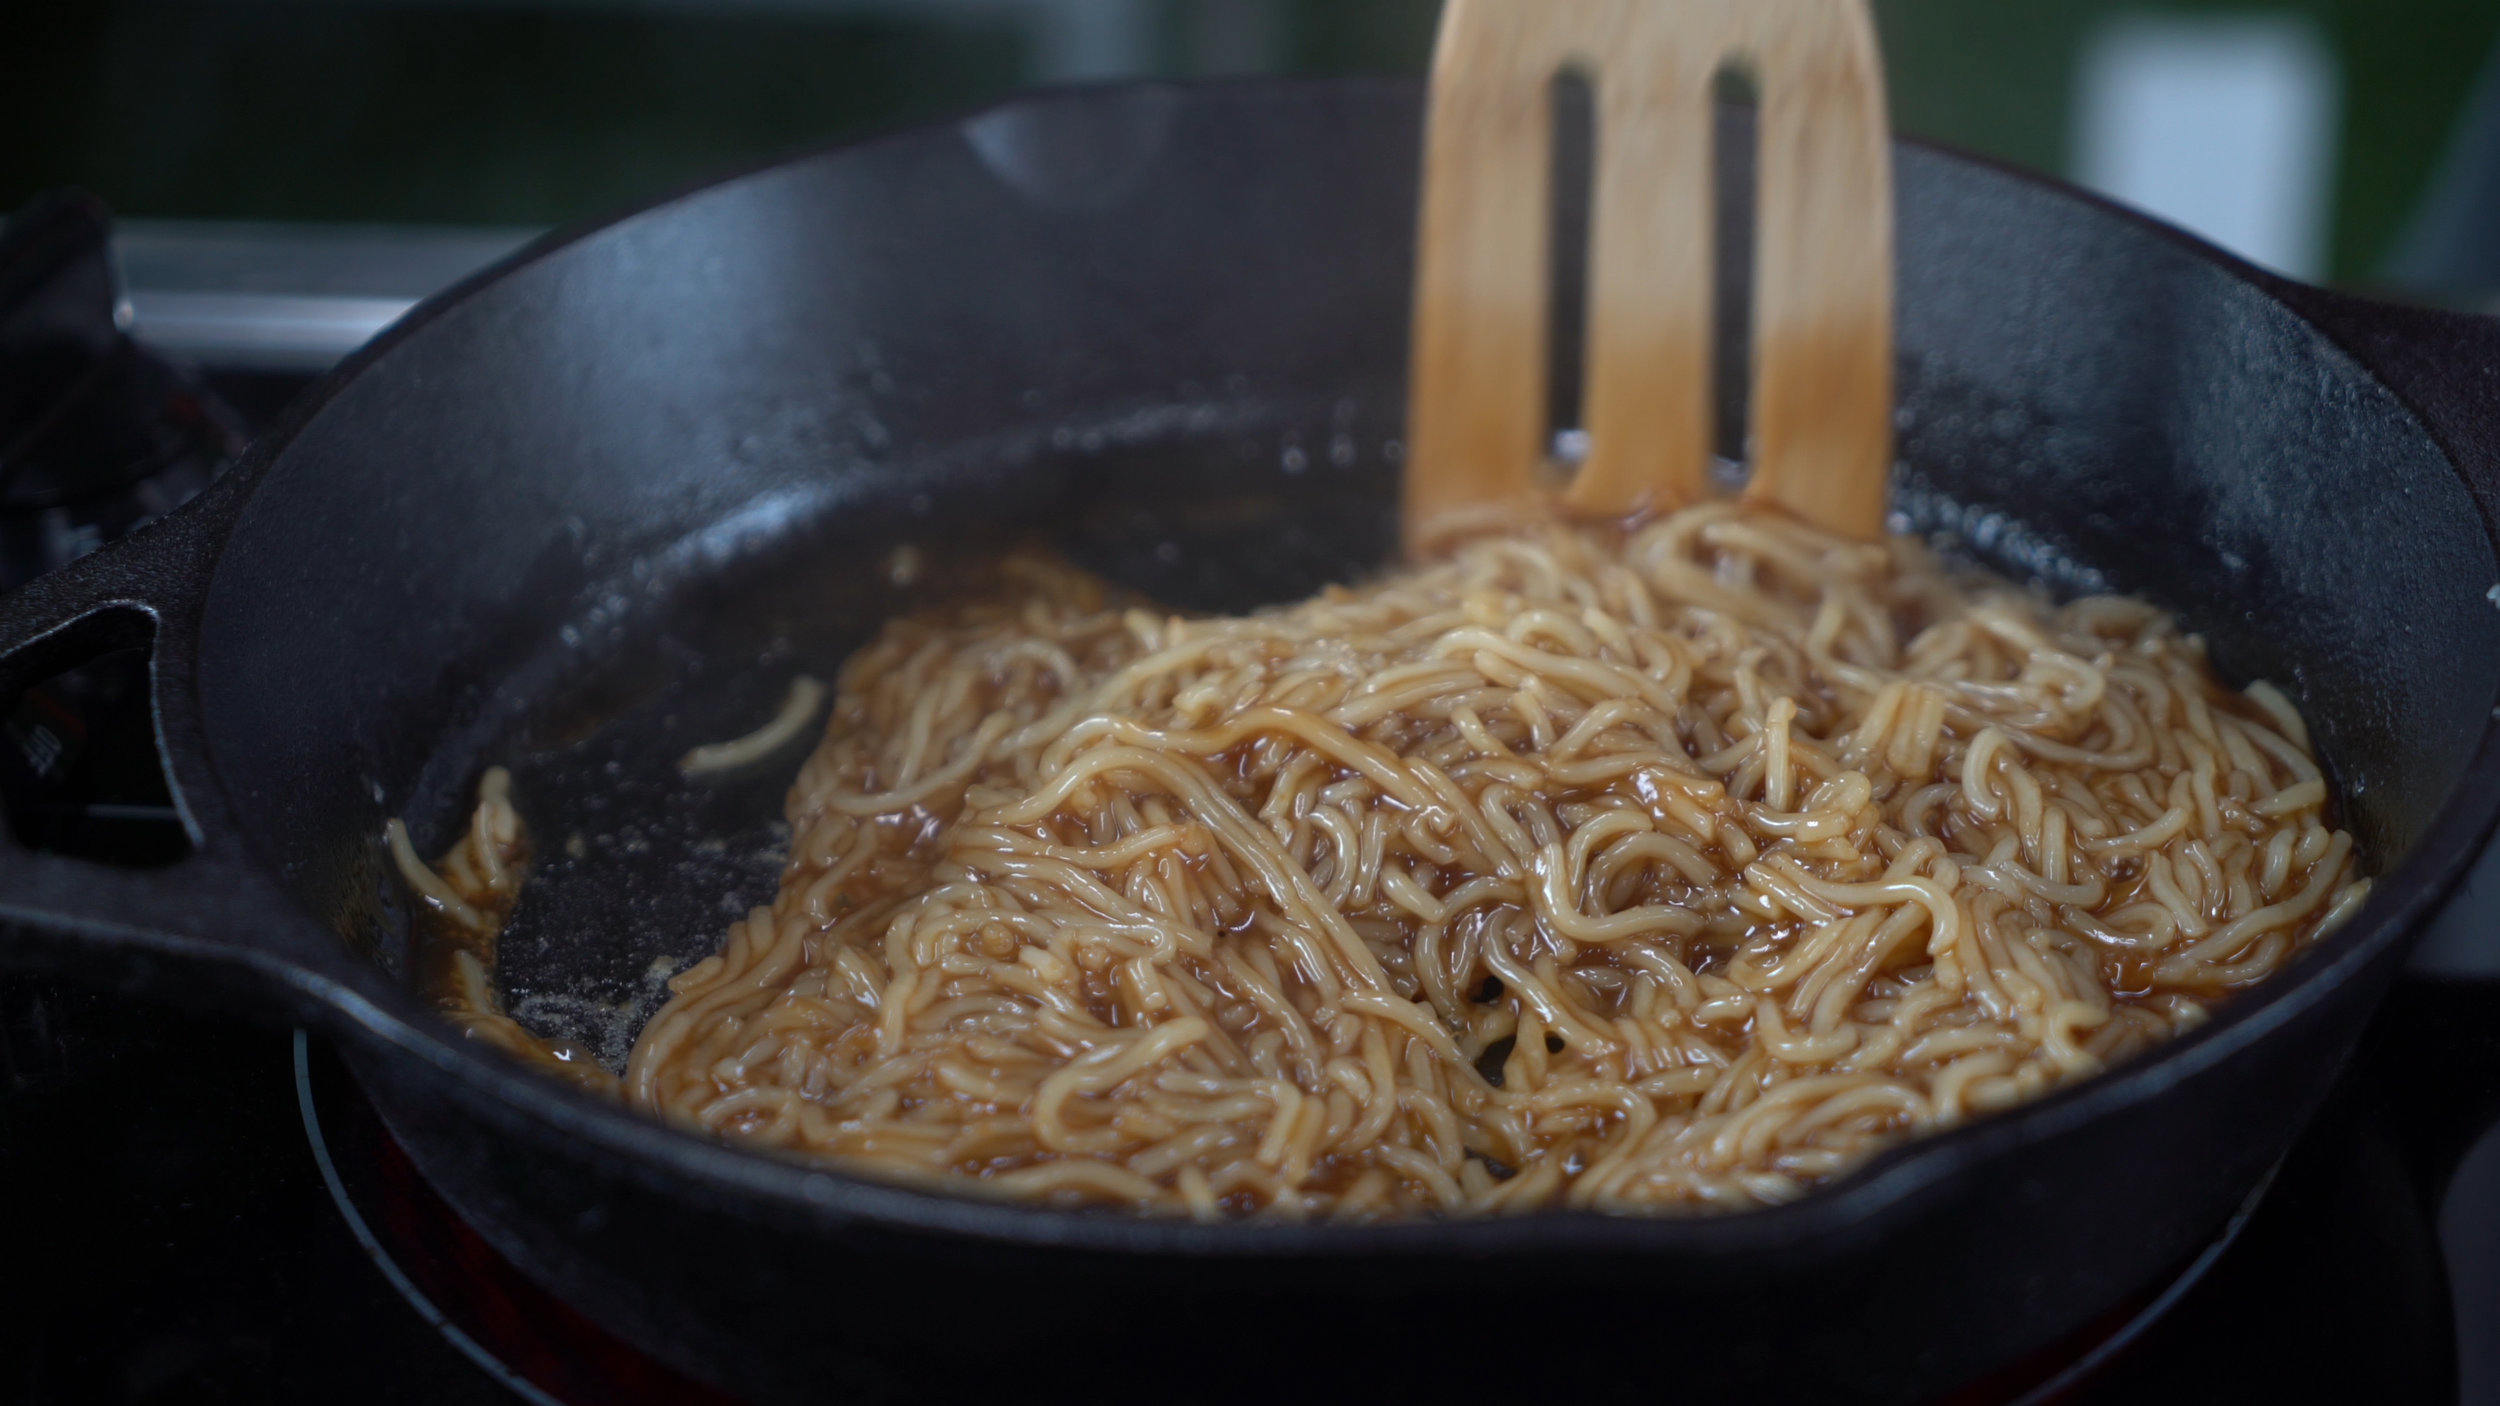 step 3. fry the noodles and combine with sauce